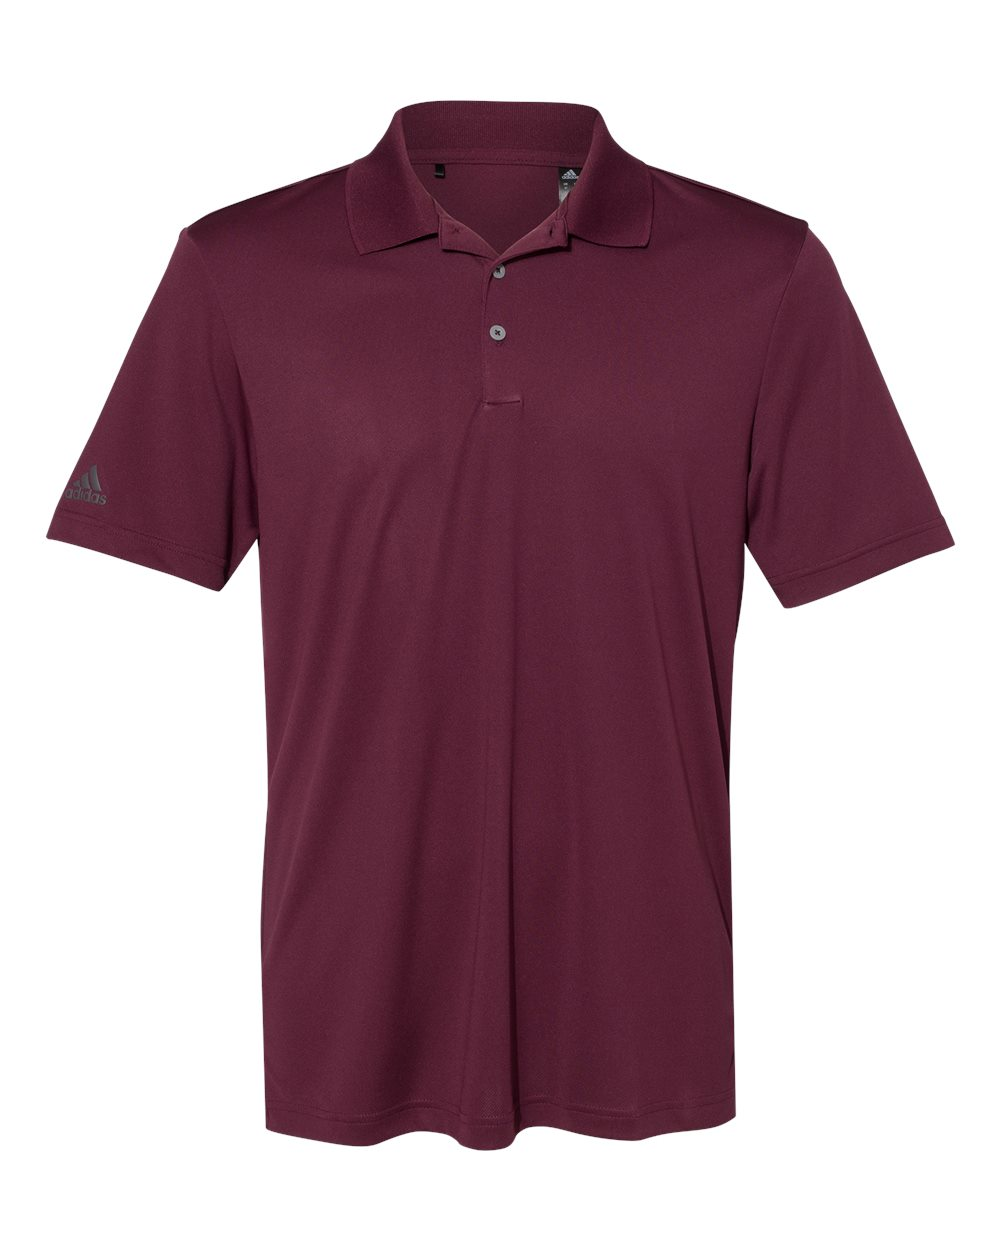 Adidas-Performance-Sport-Shirt-Polo-Button-A230-up-to-4XL miniature 28